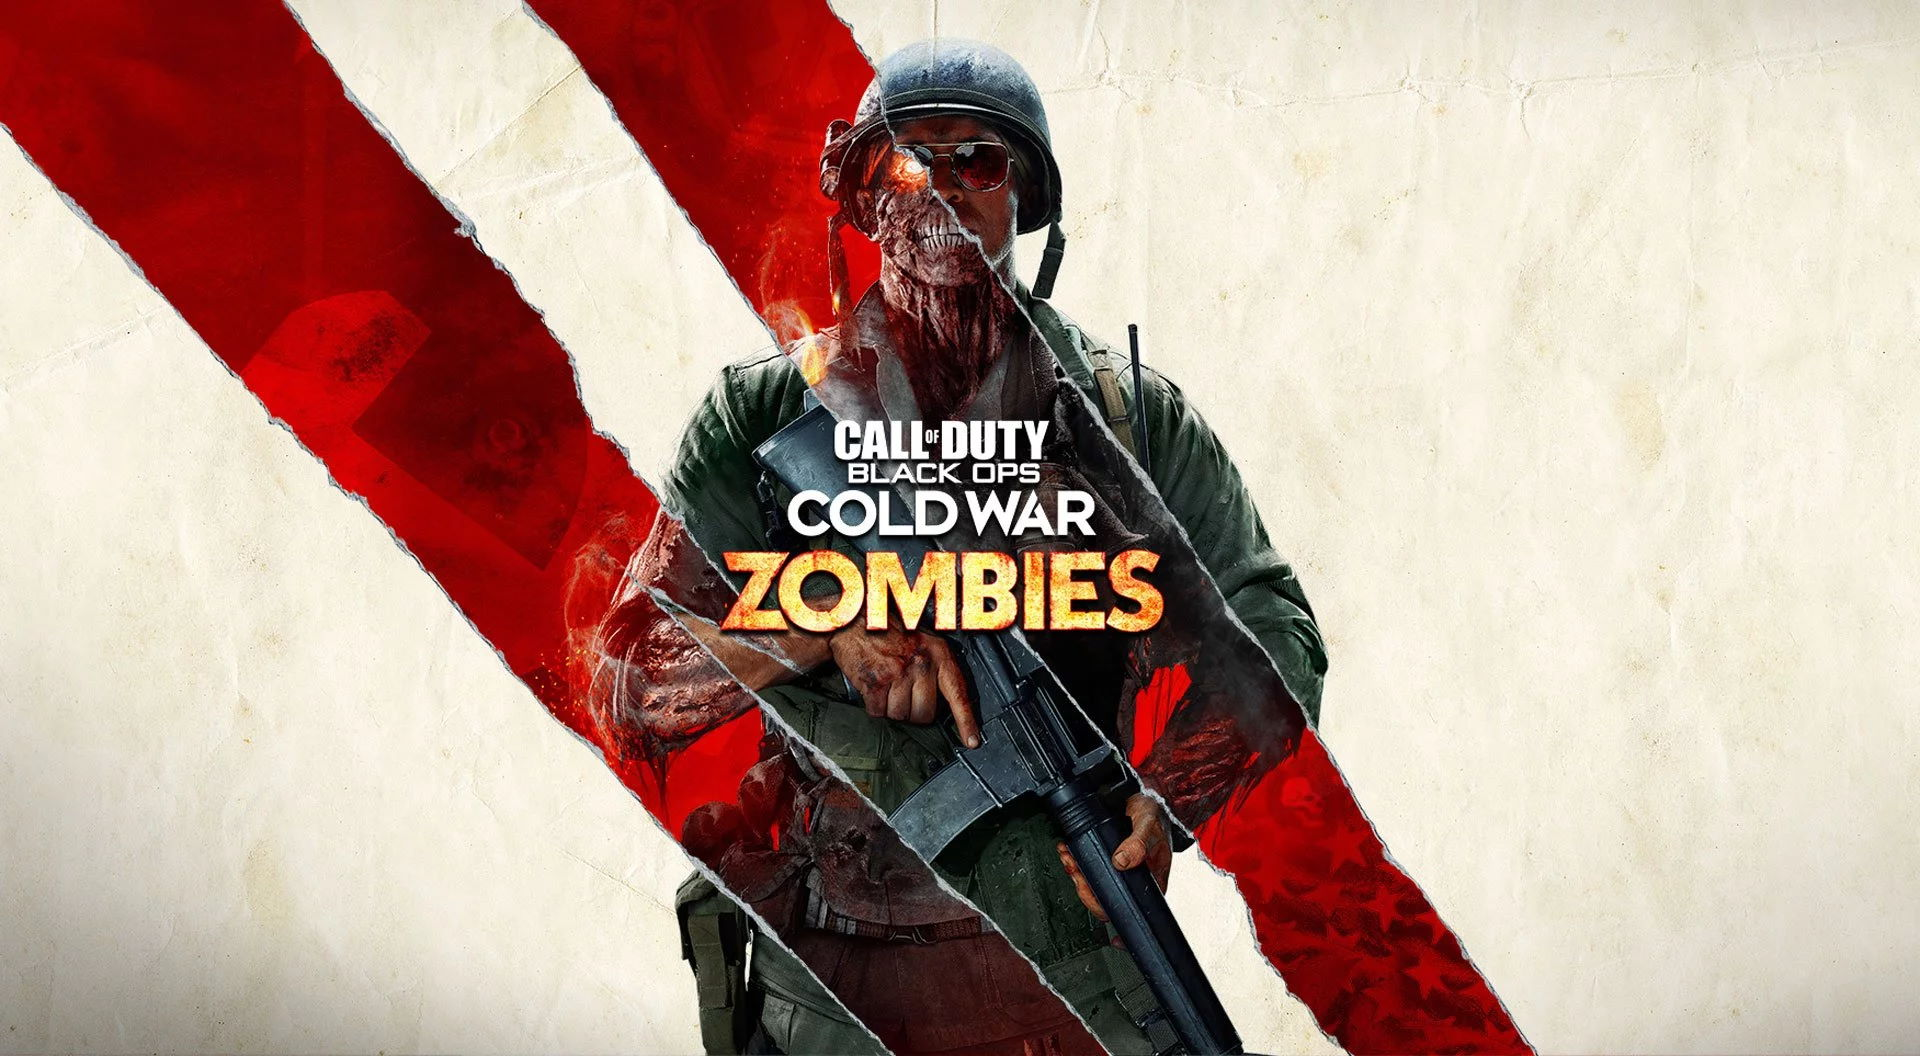 call-of-duty-black-ops-cold-war-zombies.jpg